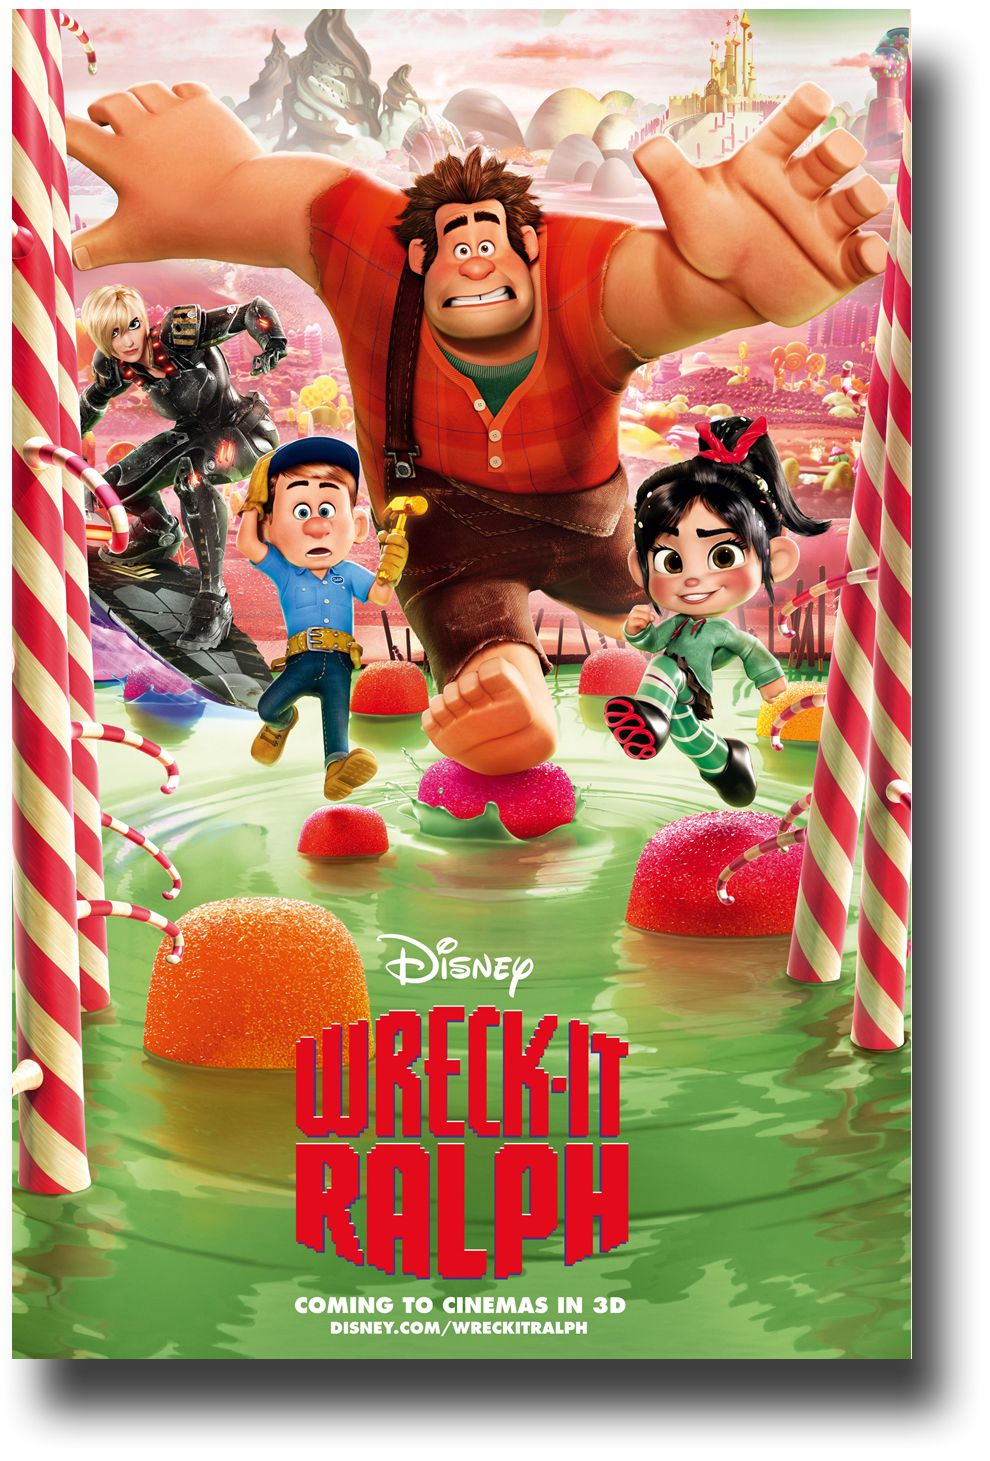 Wreck It Ralph Poster Green Lake Avalable At Http Concertposter Org Wreck It Ralph Poster Movie Promo F Wreck It Ralph Movie Wreck It Ralph Animation Movie